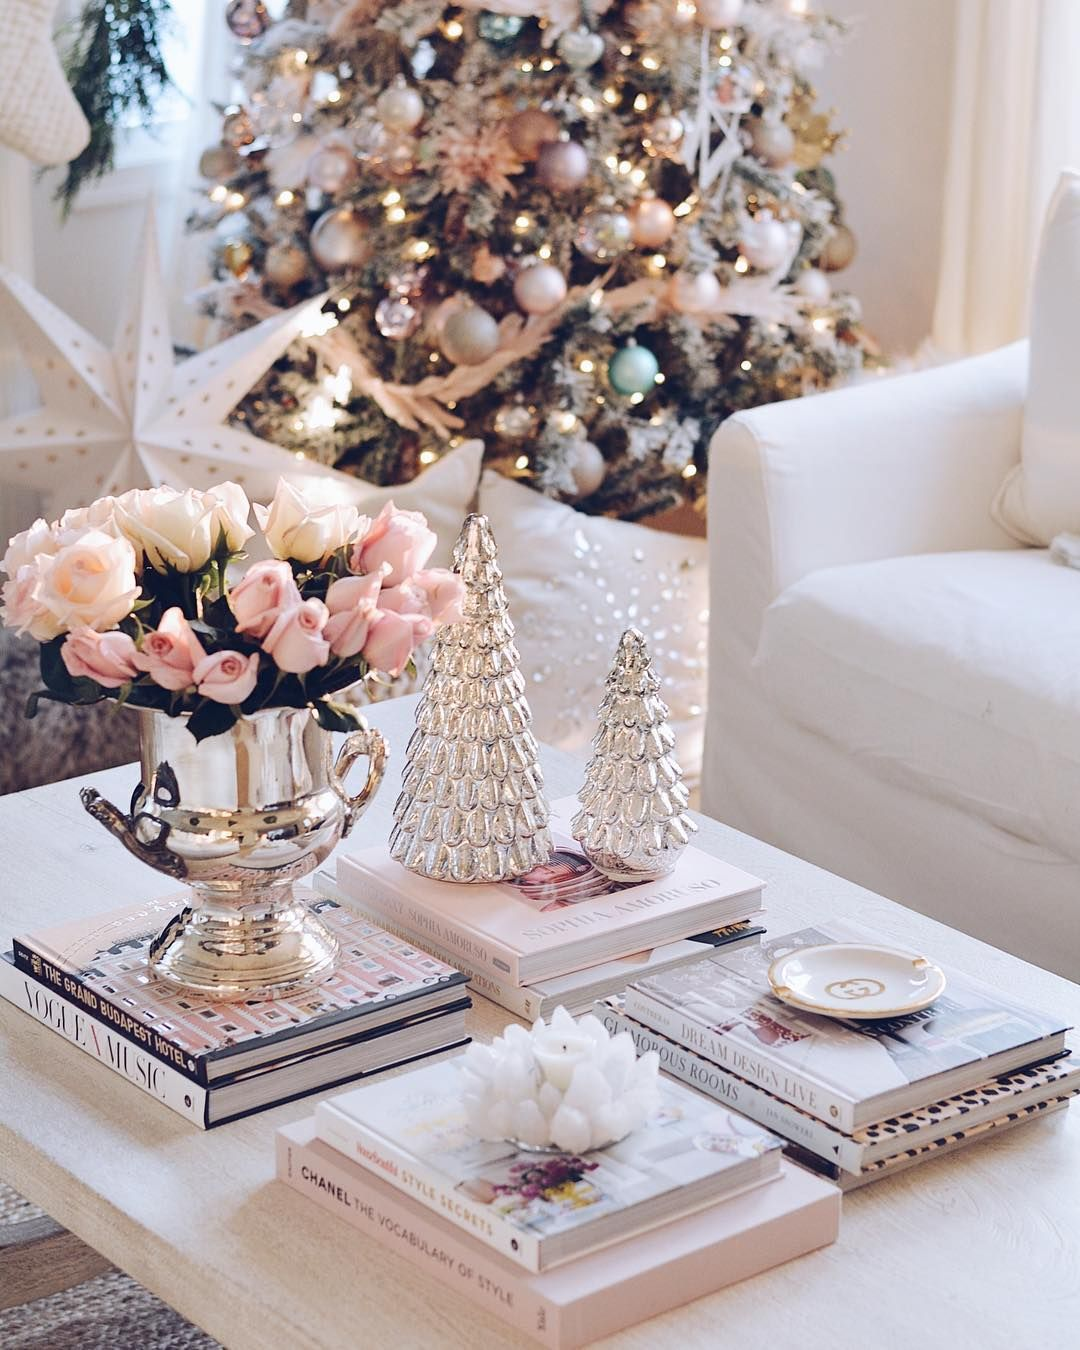 Designs By Ceres On Instagram Happy Saturday Gave Myself Some New Pink Coffee Table Books Cause I Deserve A Toy Too Decor Pink Christmas Home Decor